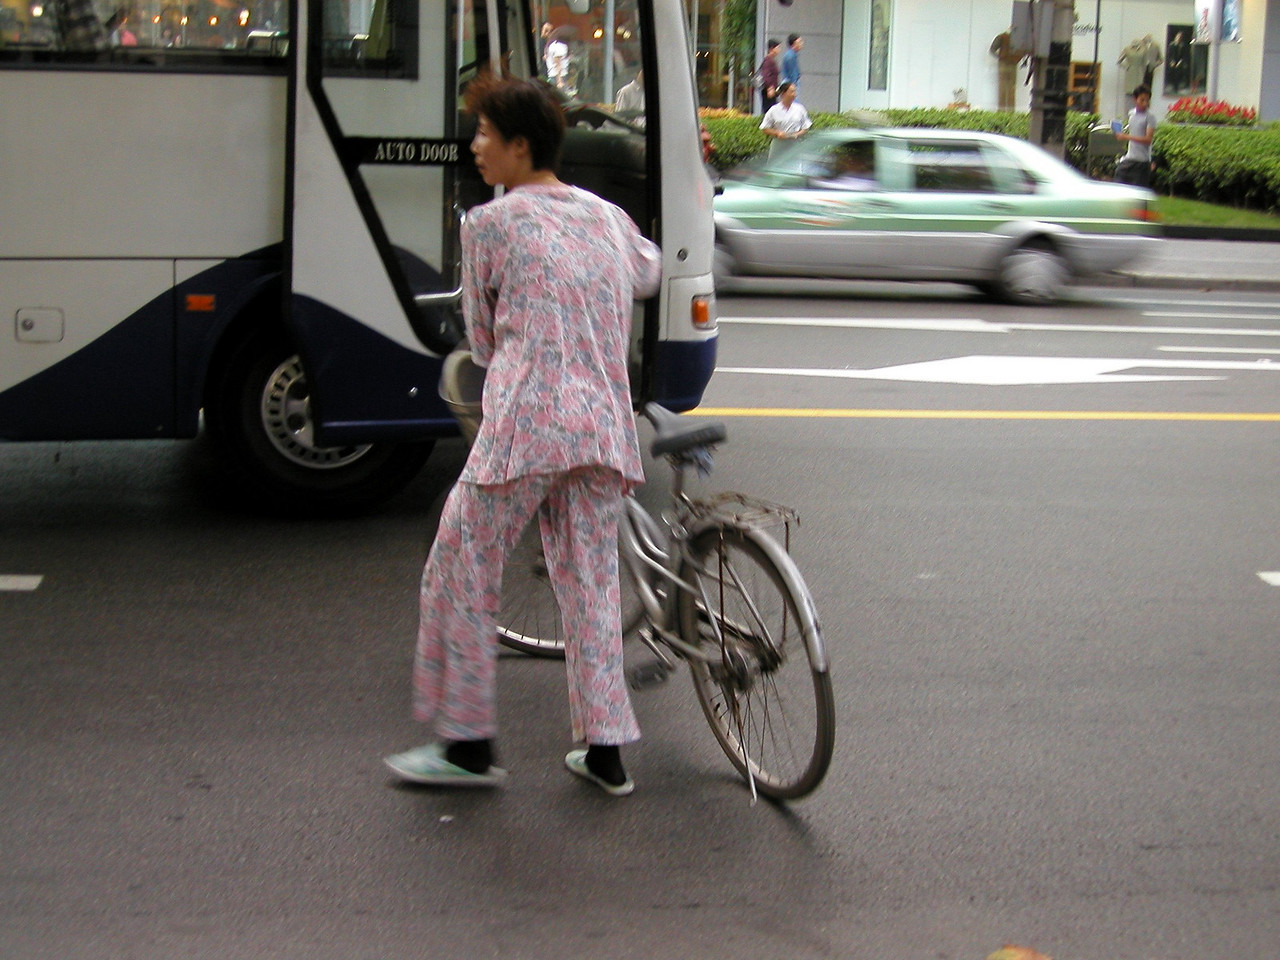 Pajamas and bicycles go well